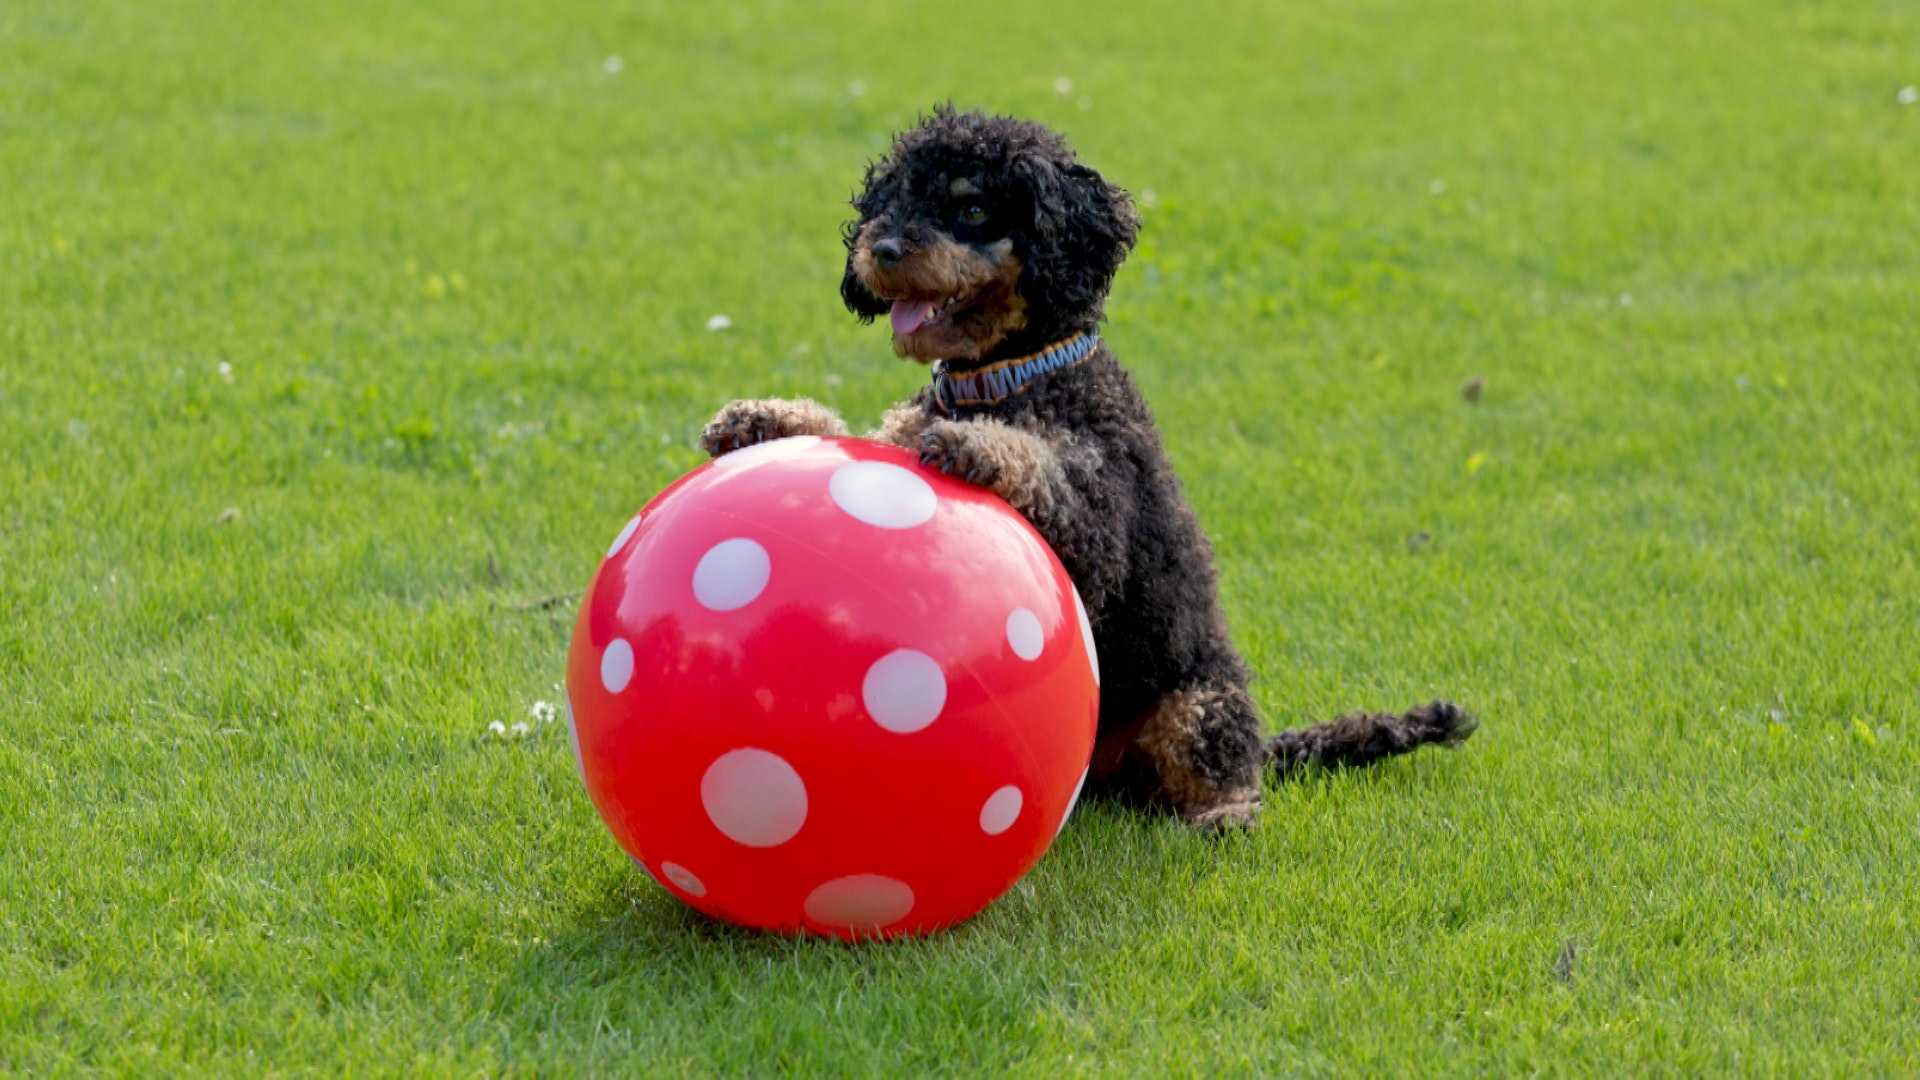 Get a Bachelor's Degree in Dog Training